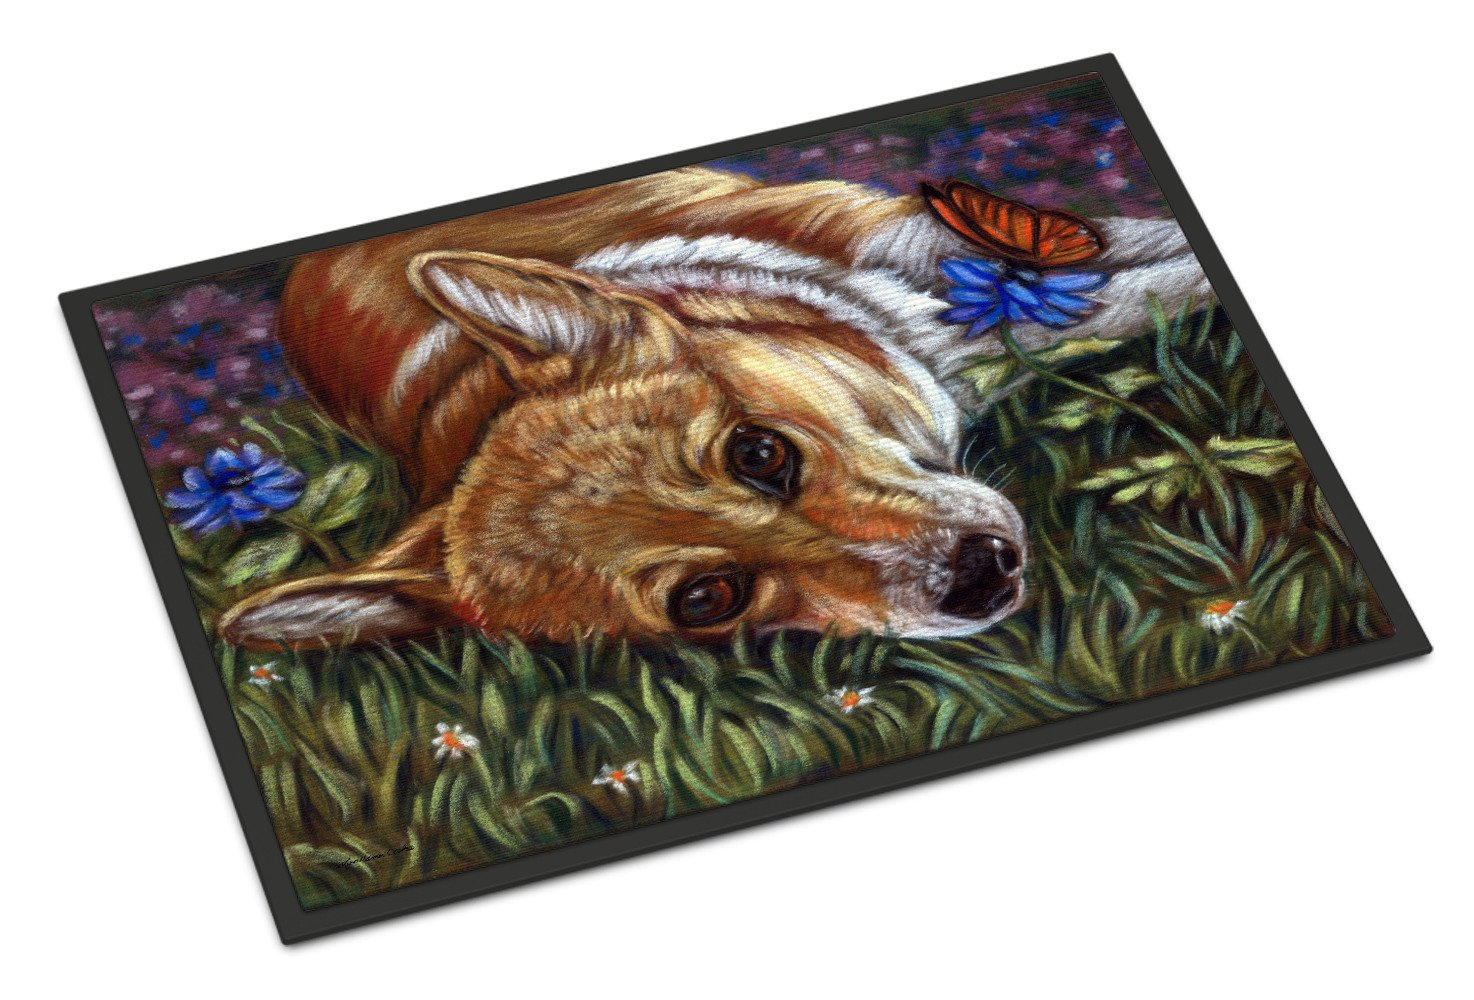 Corgi Pastel Butterfly Indoor or Outdoor Mat 18x27 7325MAT - the-store.com